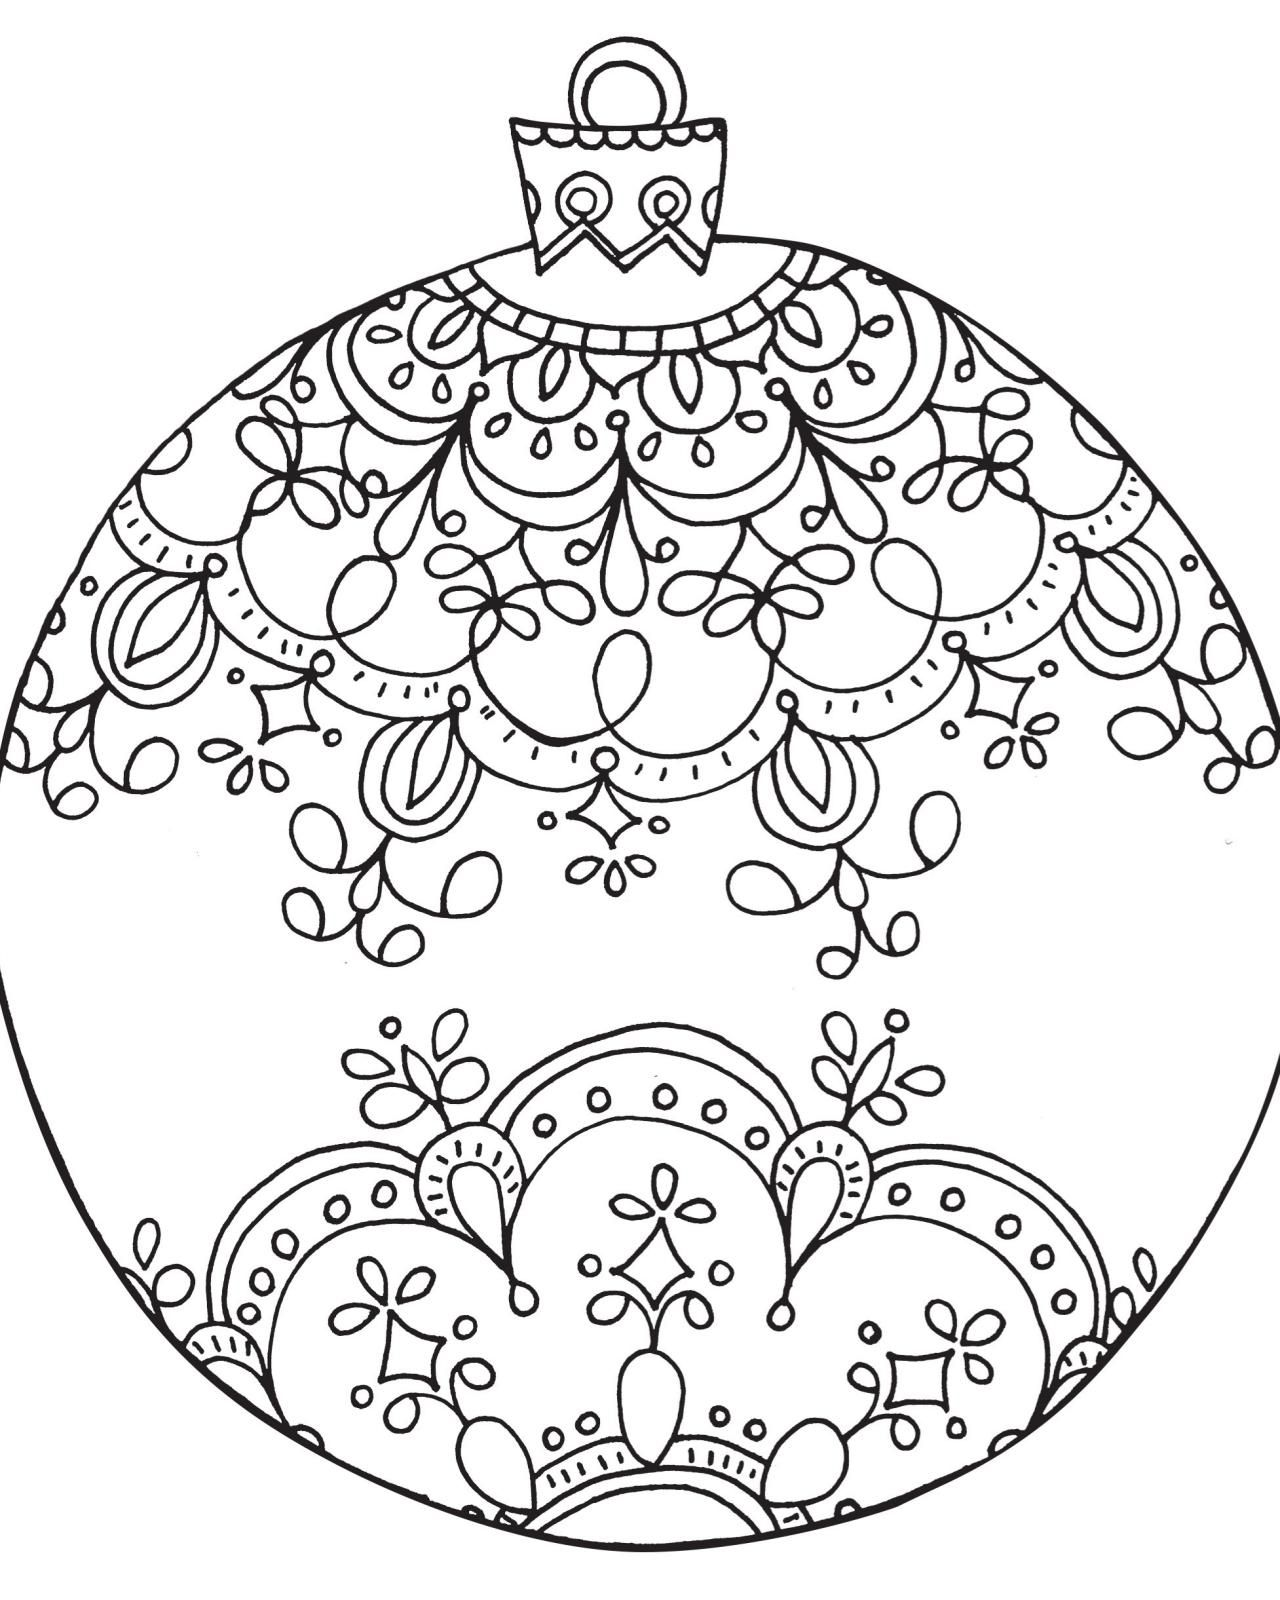 Christmas Coloring Pages For Adults With Free Printable Mandala